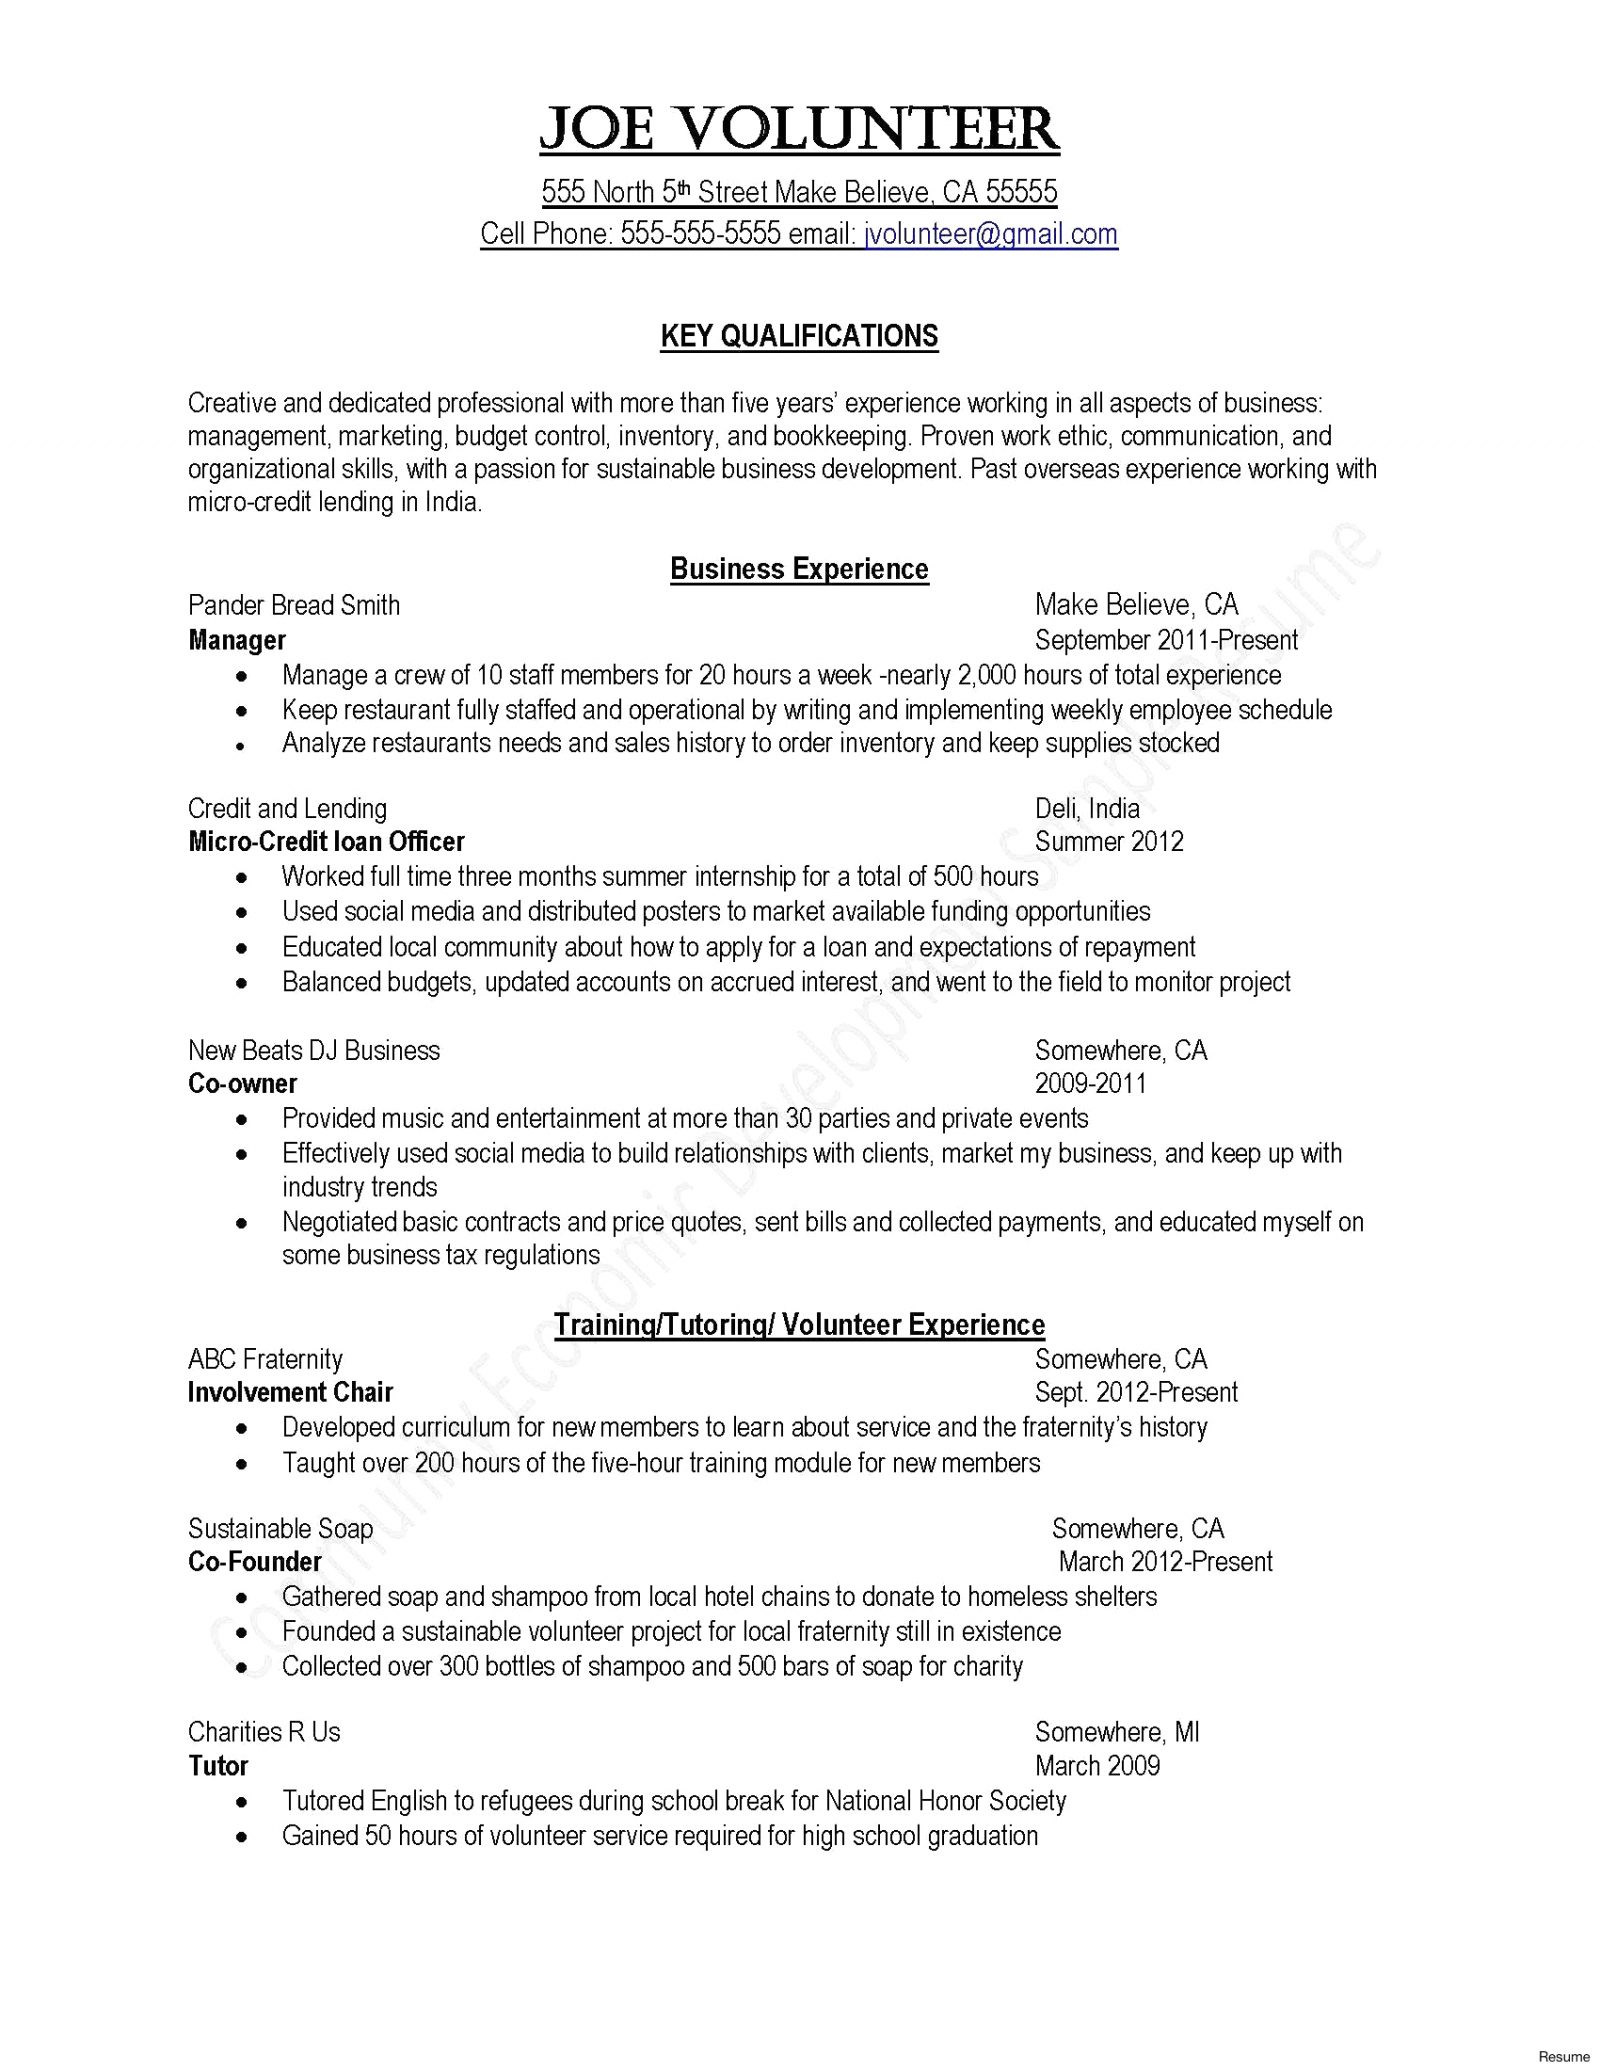 project manager description for resume sample awesome tutor puter skills examples fresh od assistant jobs charlotte